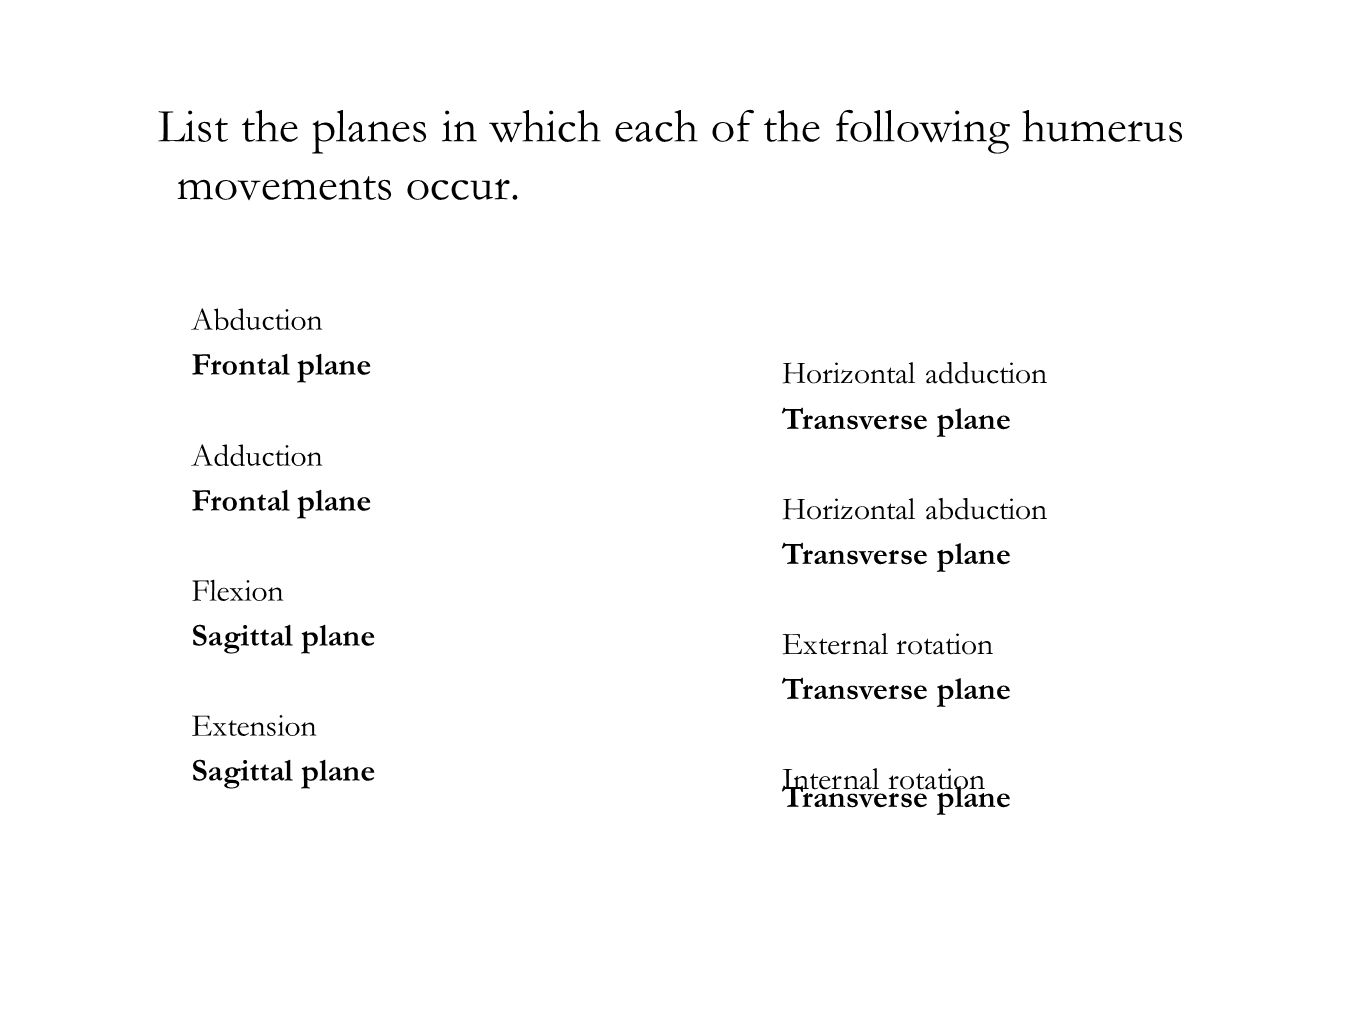 List the planes in which each of the following humerus movements occur.